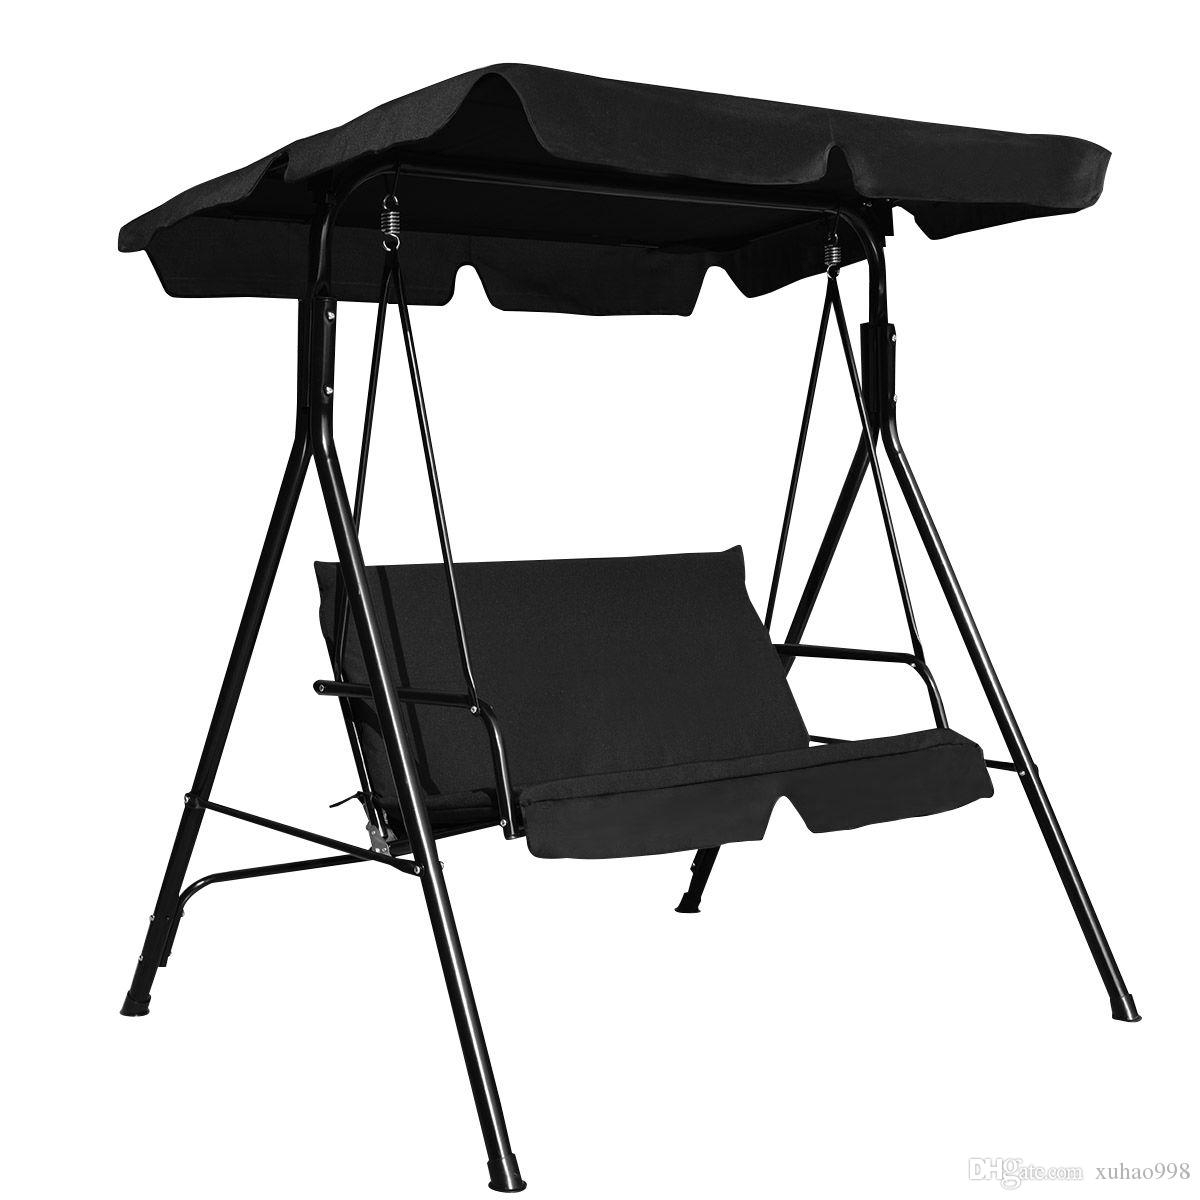 2019 Loveseat Patio Canopy Swing Glider Hammock Cushioned Steel Frame  Outdoor Black From Xuhao998, $ (Image 1 of 25)